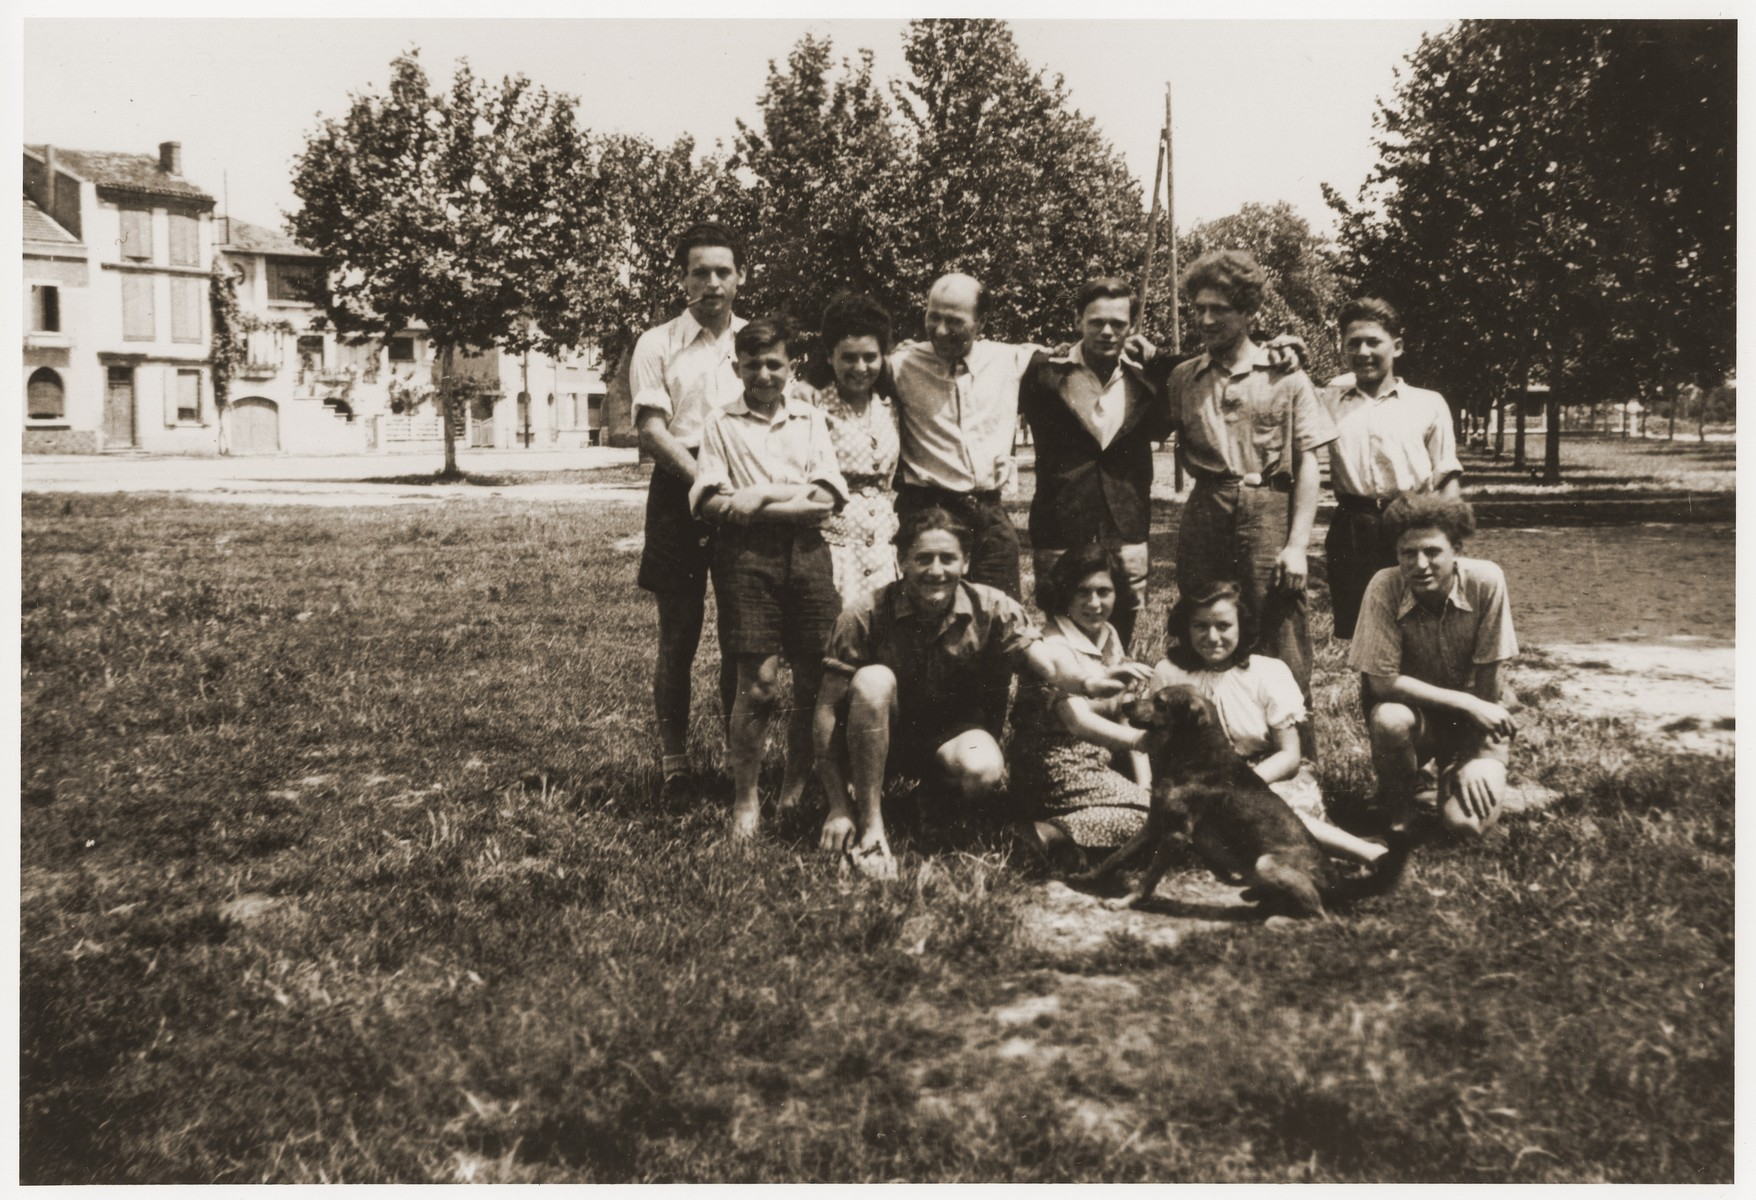 Group portrait of Jewish youth at the Hotel du Moulin in Moissac.    The Hotel du Moulin residence for displaced Jewish youth was operated by the French-Jewish scouting movement, Eclaireurs Israelites de France.  Among those pictured is Walter Karliner (back row, third from the right).